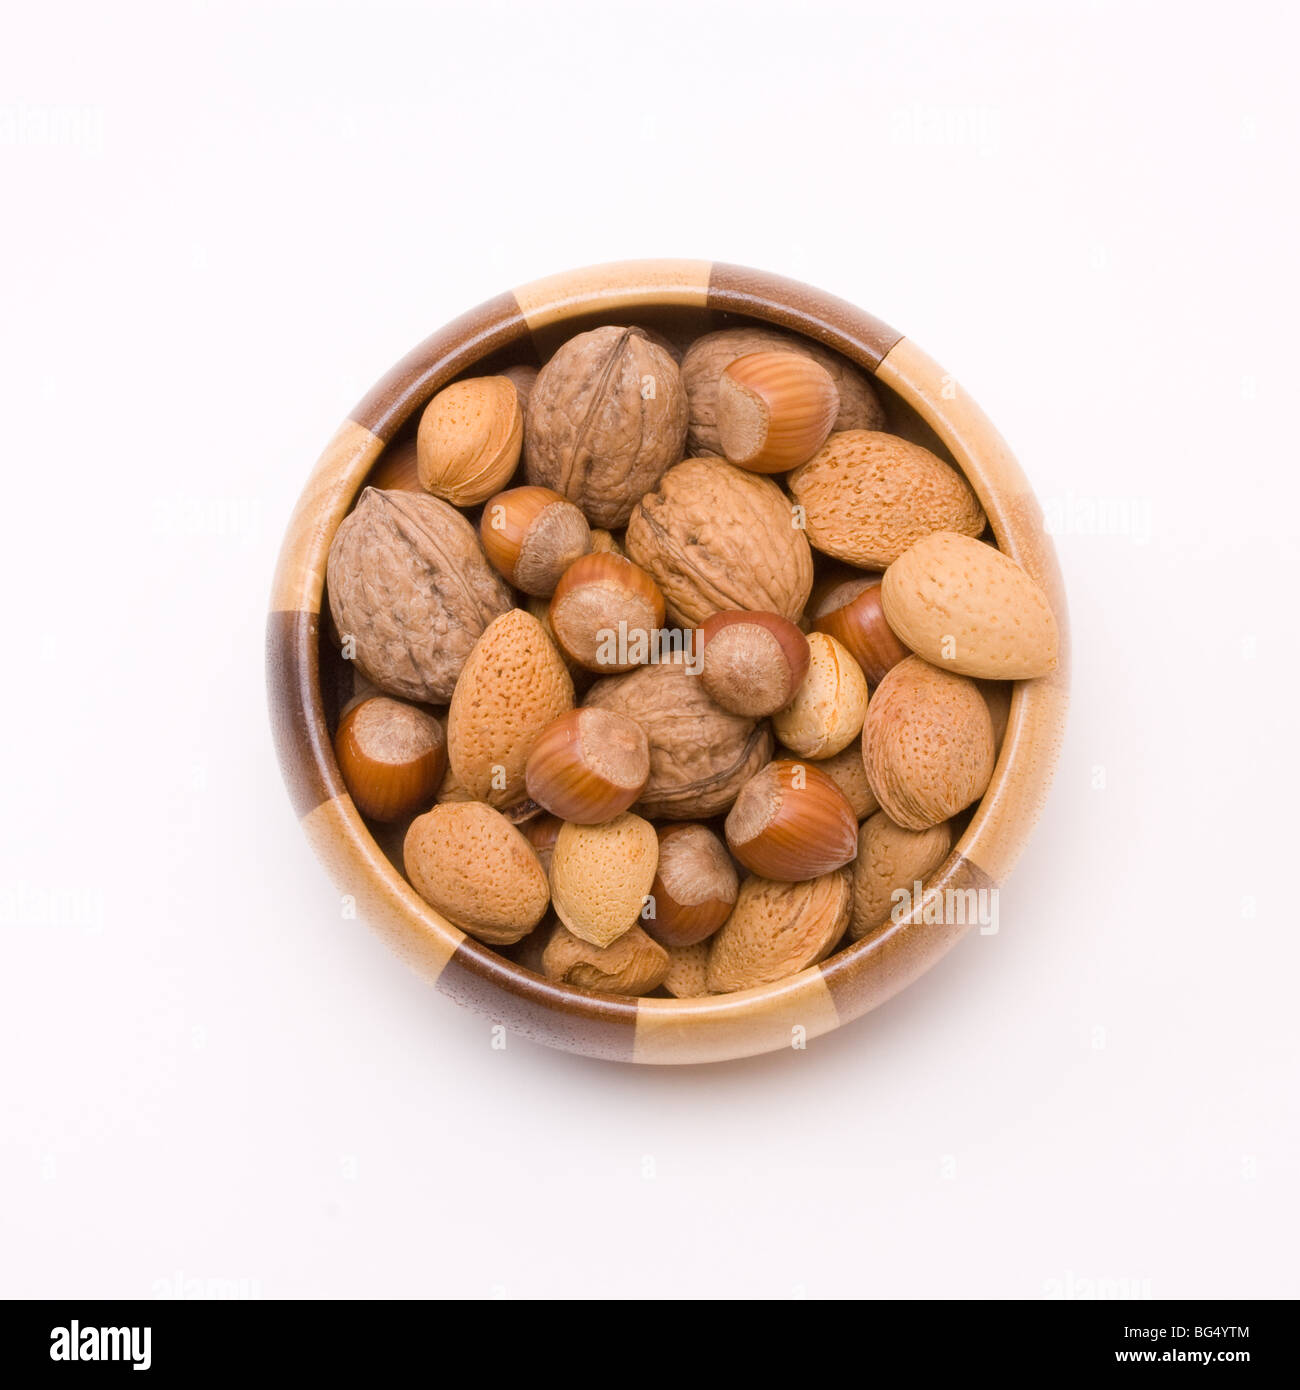 wooden bowl filled with mixed nuts in their shells, hazelnuts, walnuts and almonds. Stock Photo